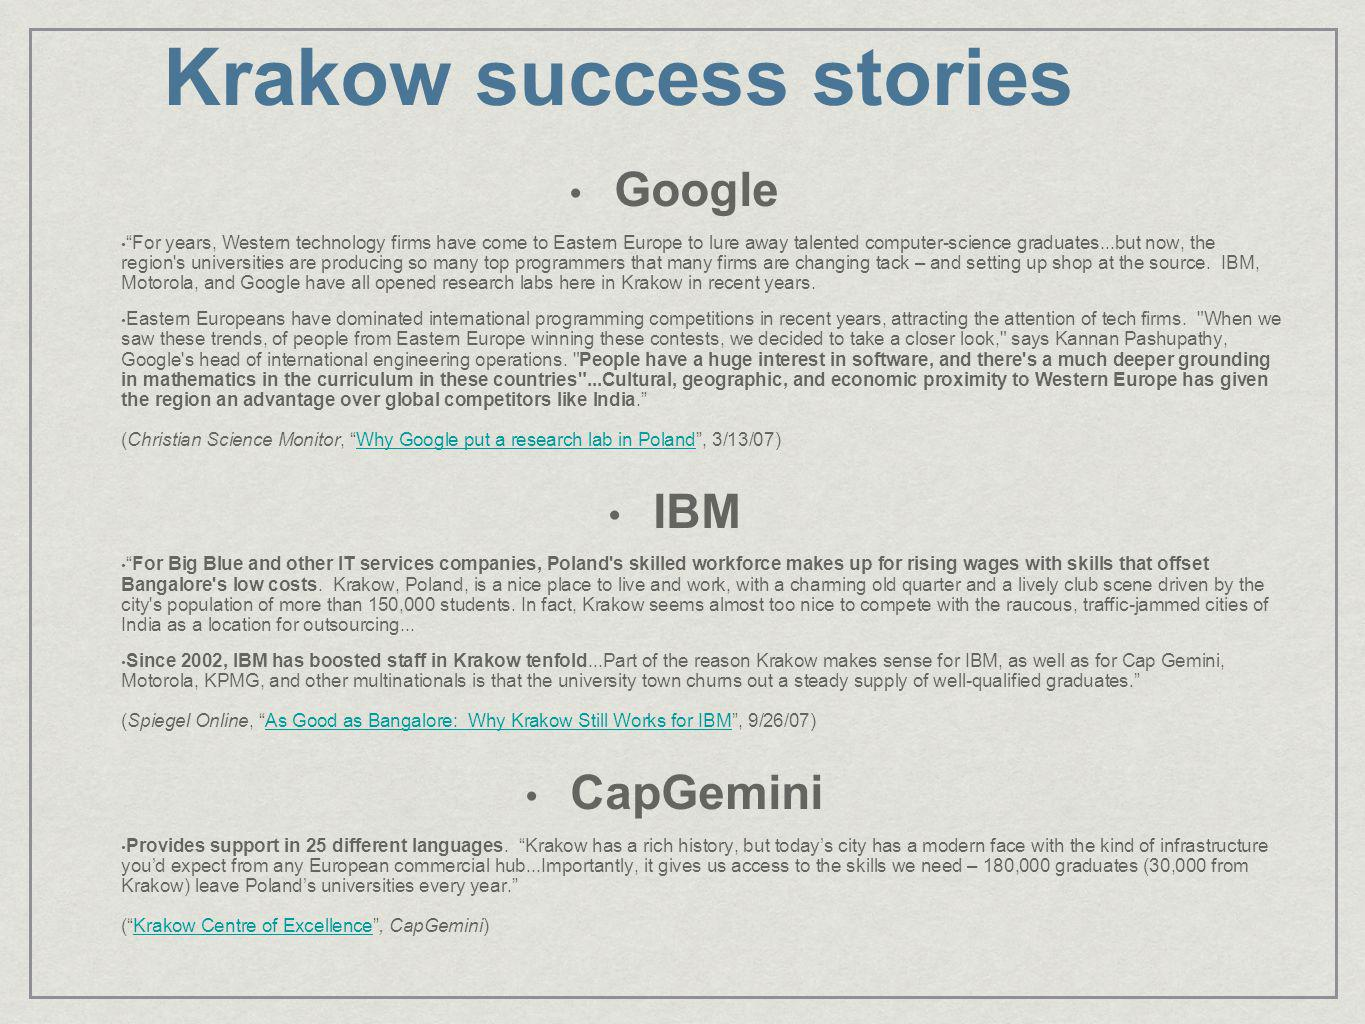 Krakow success stories Google For years, Western technology firms have come to Eastern Europe to lure away talented computer-science graduates...but now, the region s universities are producing so many top programmers that many firms are changing tack – and setting up shop at the source.